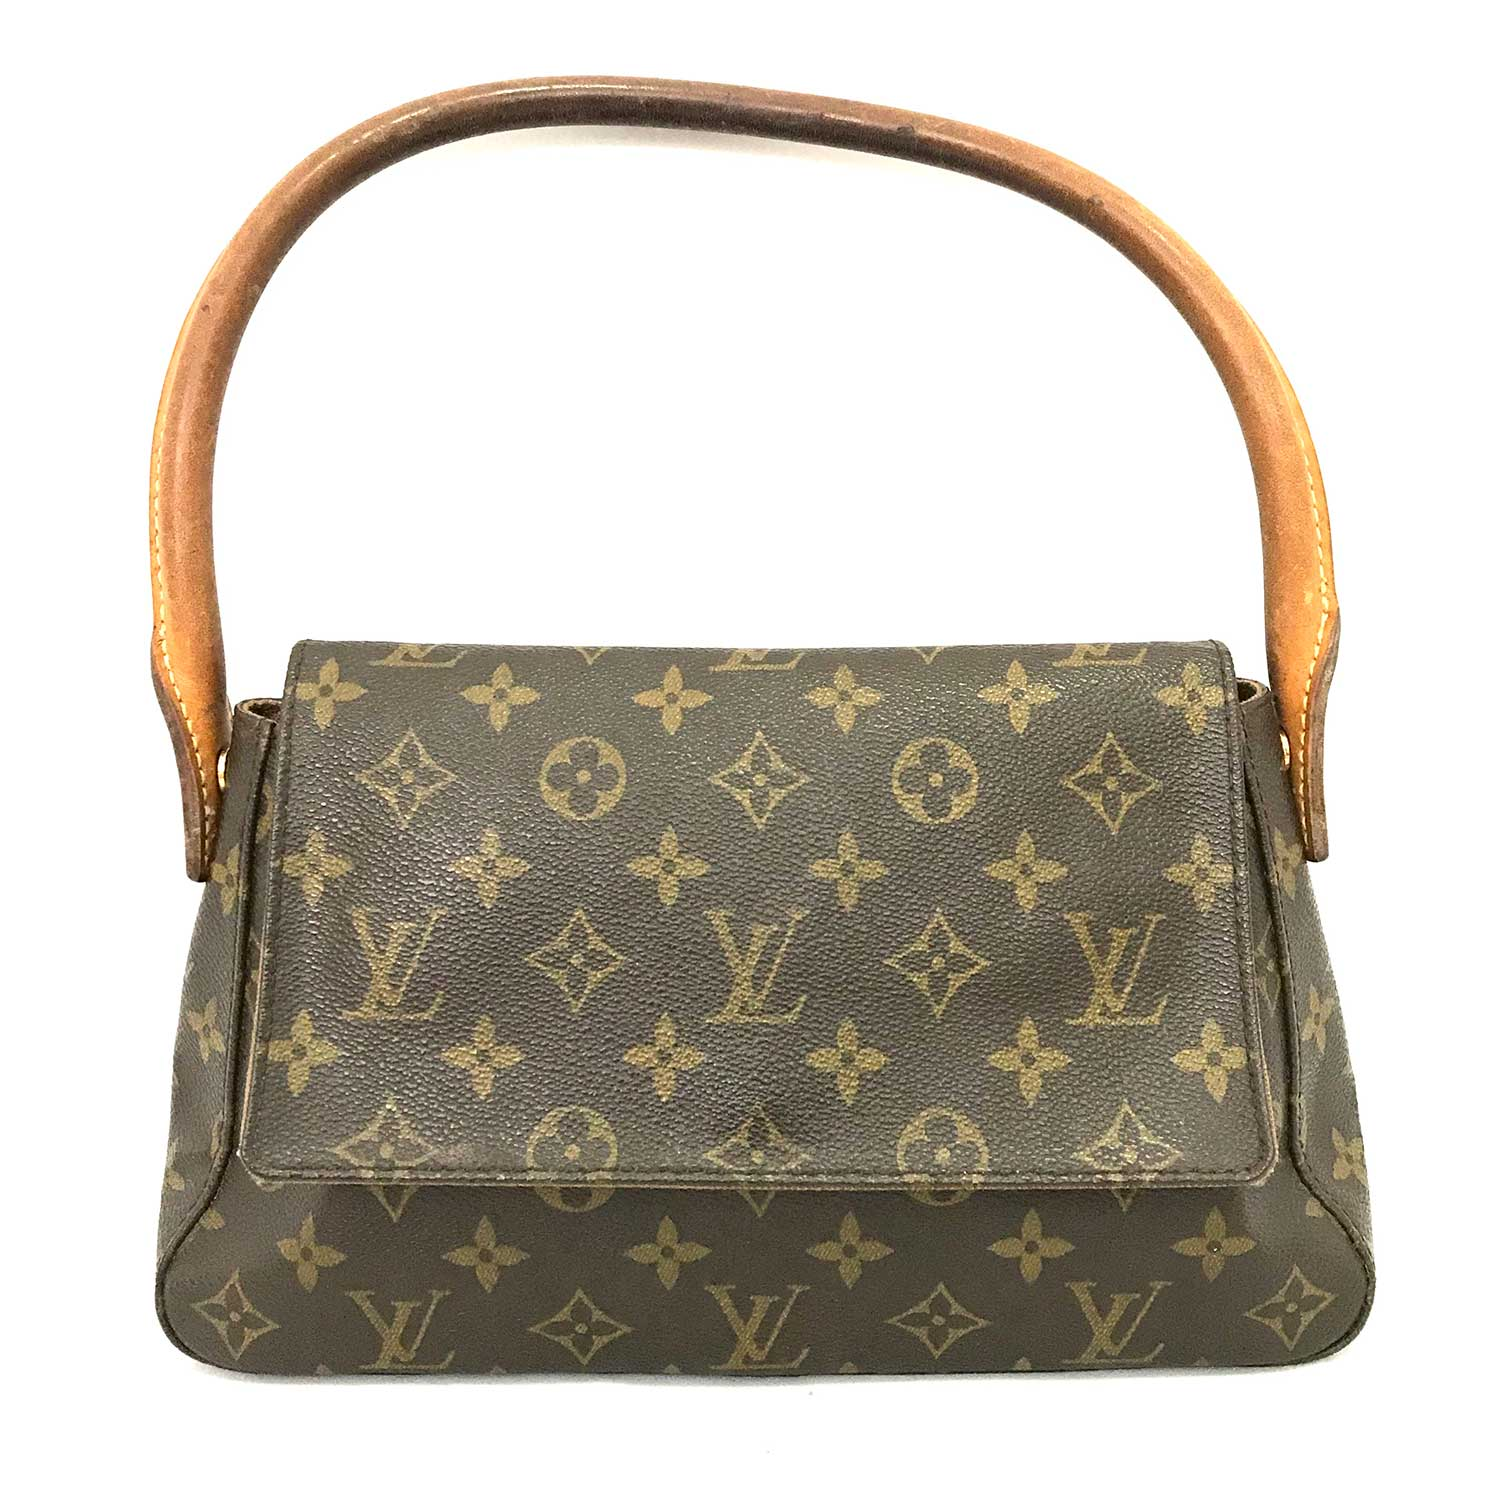 Bolsa Louis Vuitton Mini Looping Monograma